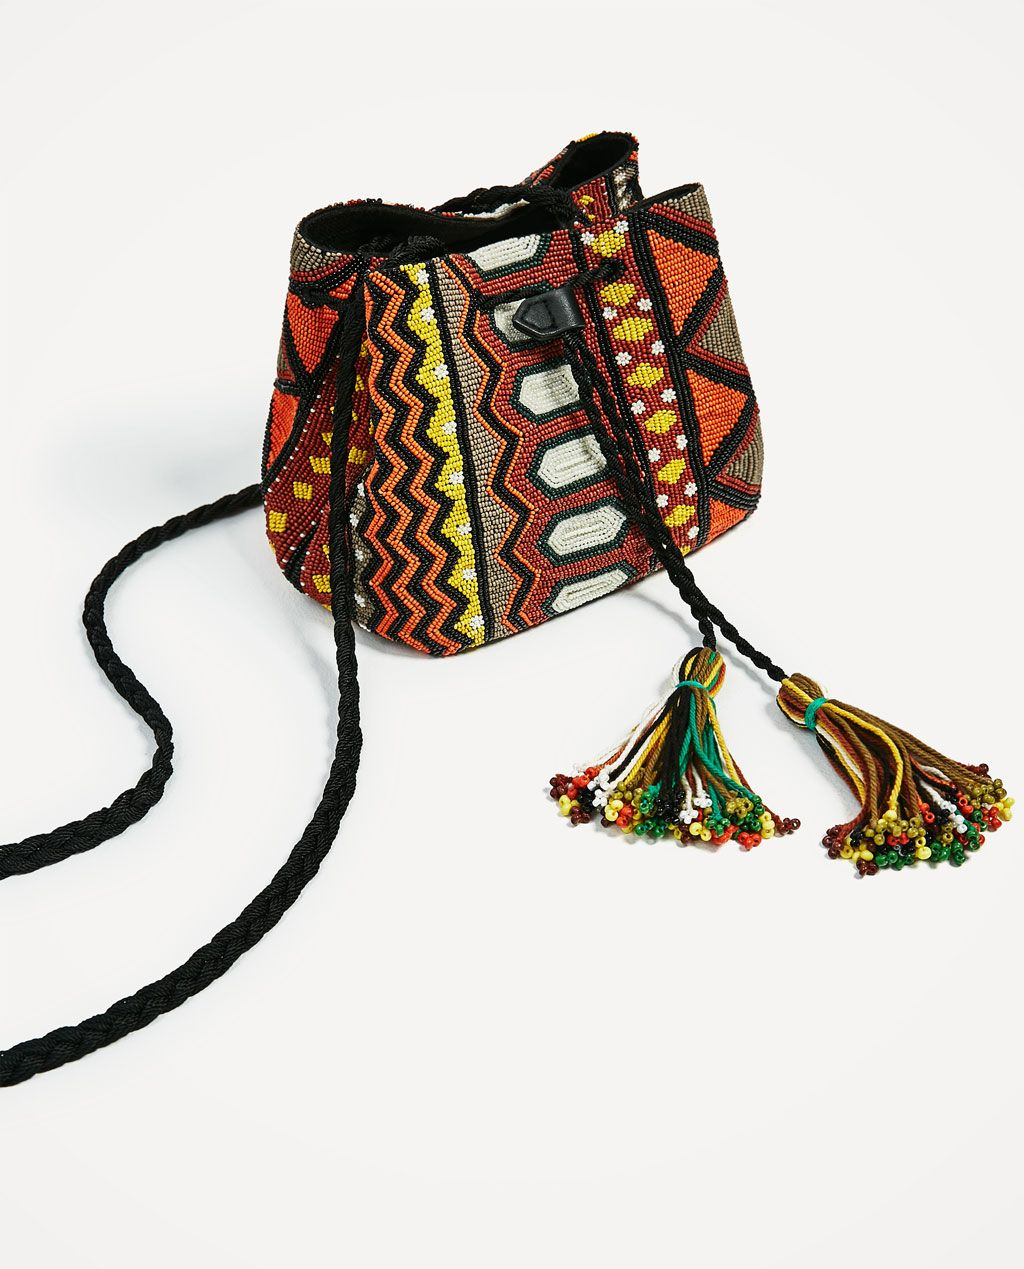 Beaded Bucket Bag Bolsas Bolsas Artesanais Bolsas De Grife